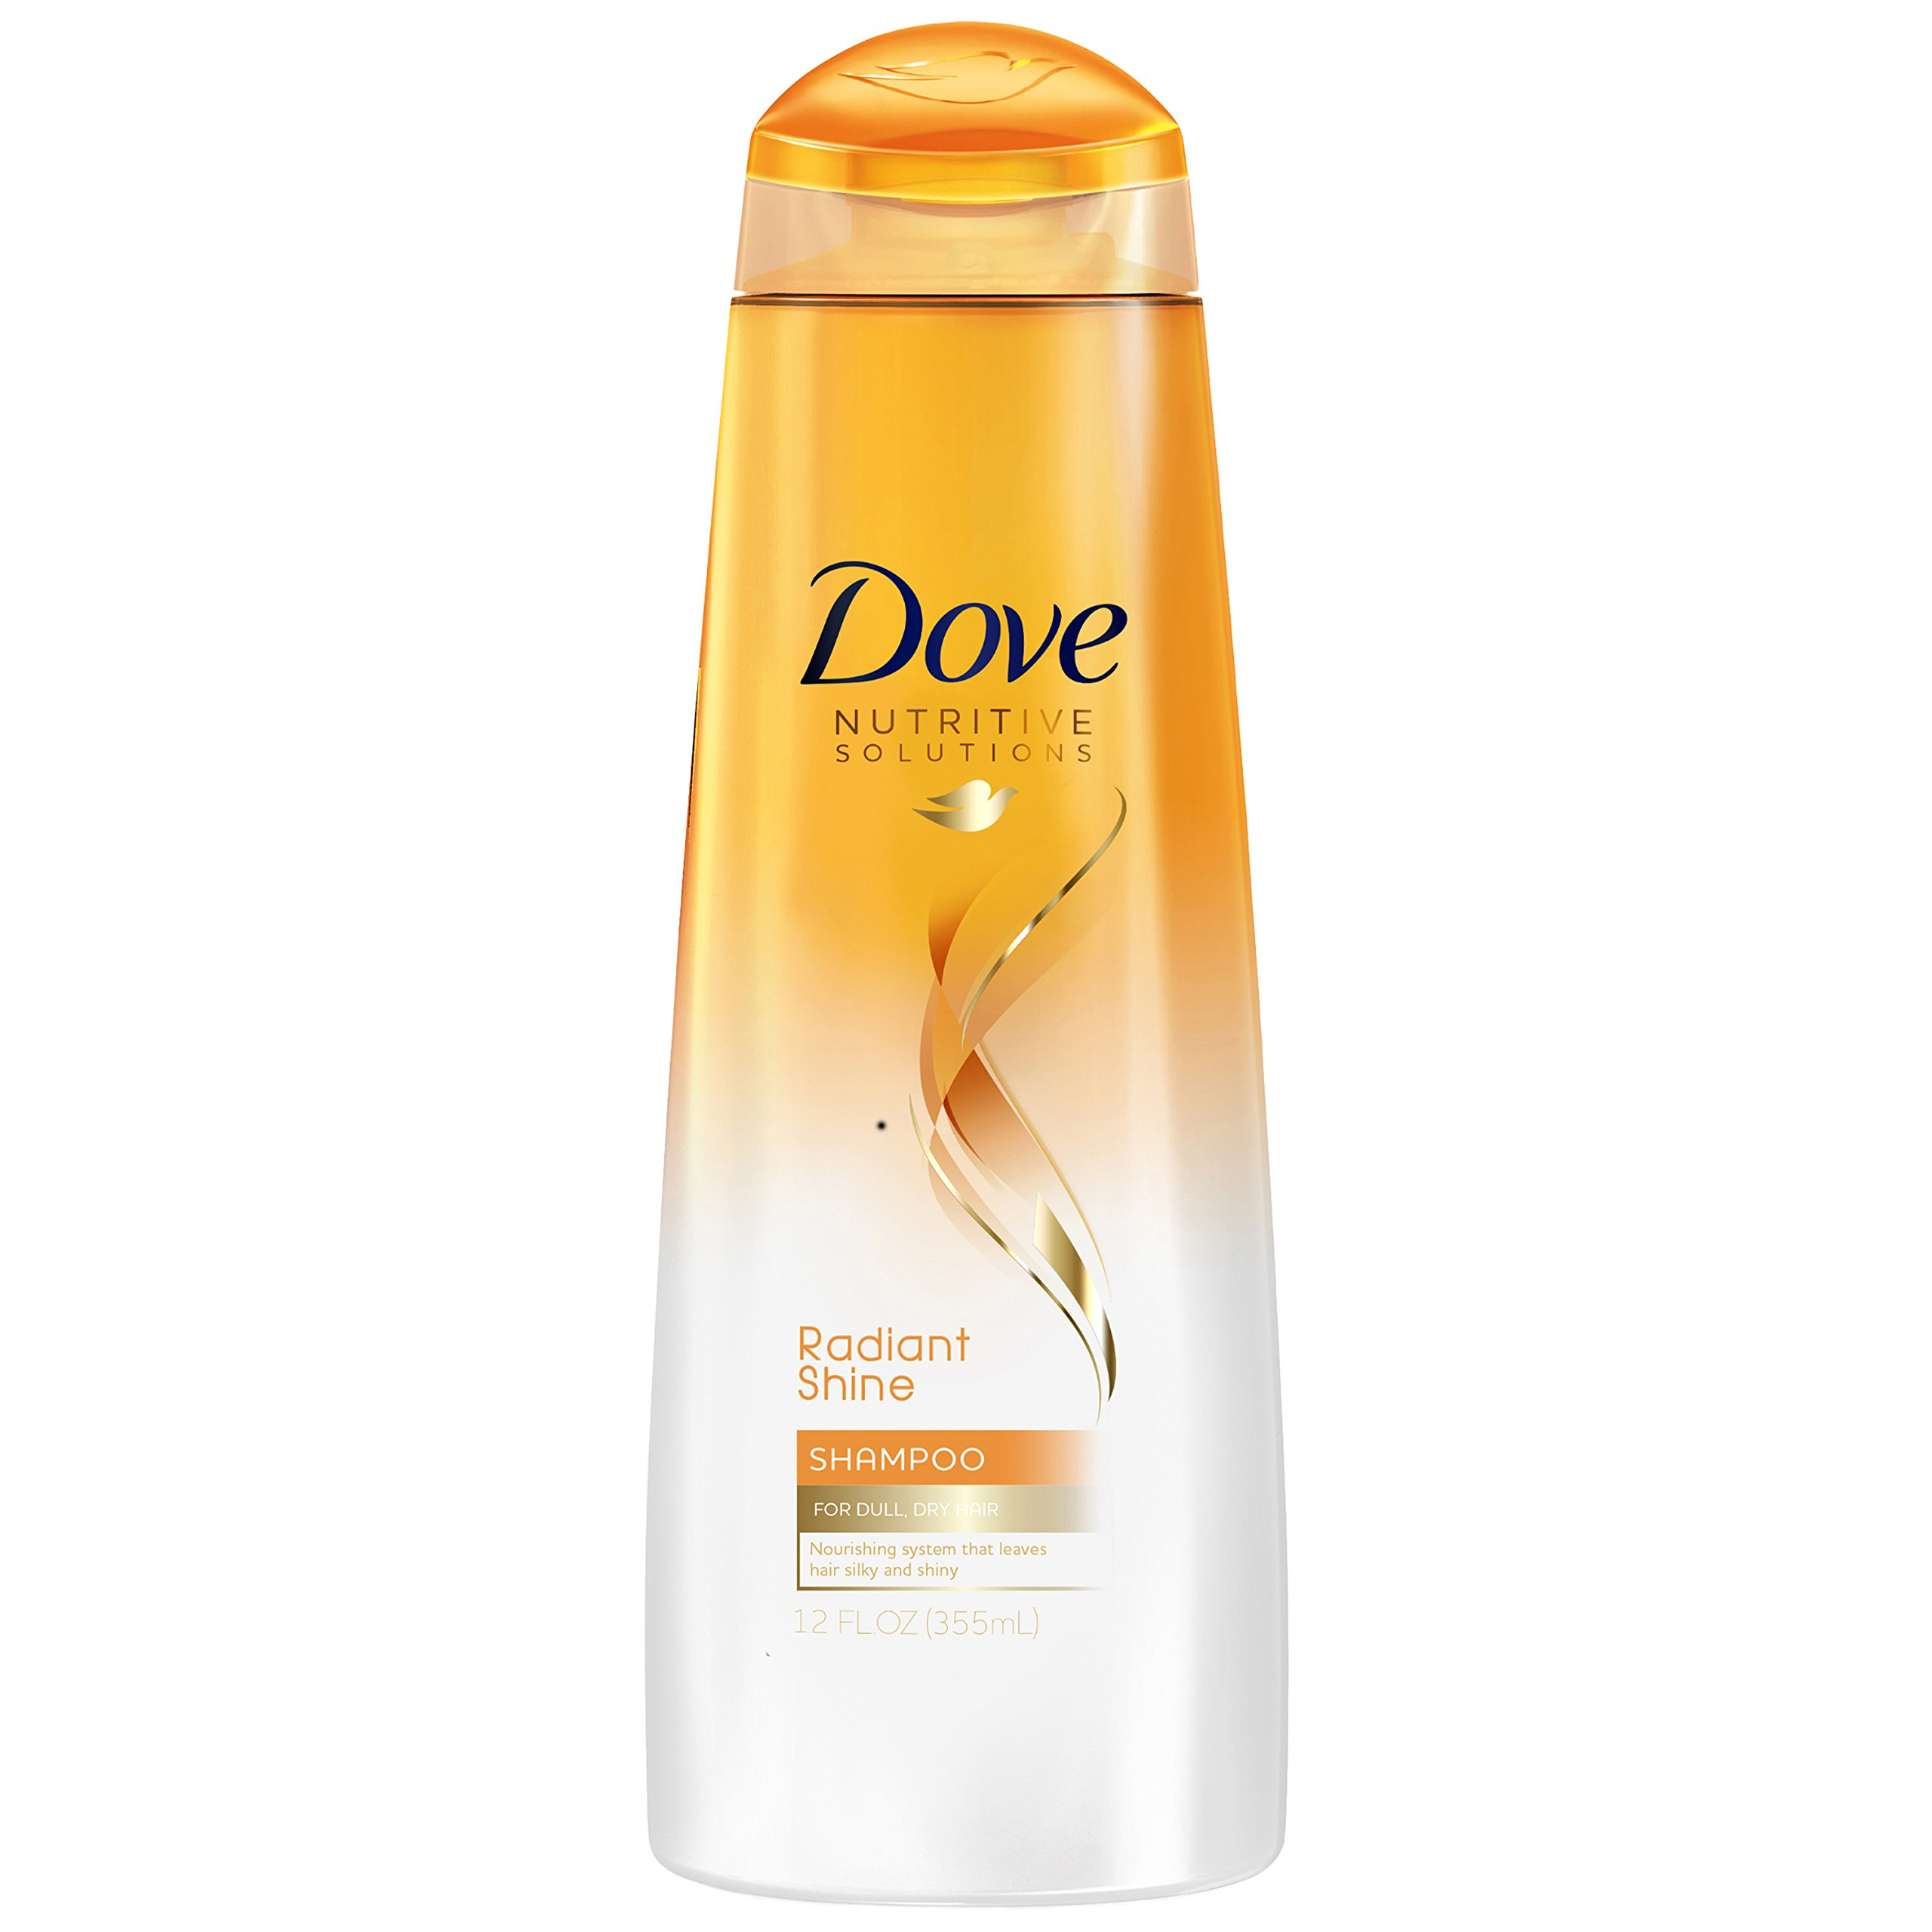 Cheap Dove Shampoo India Find Dove Shampoo India Deals On